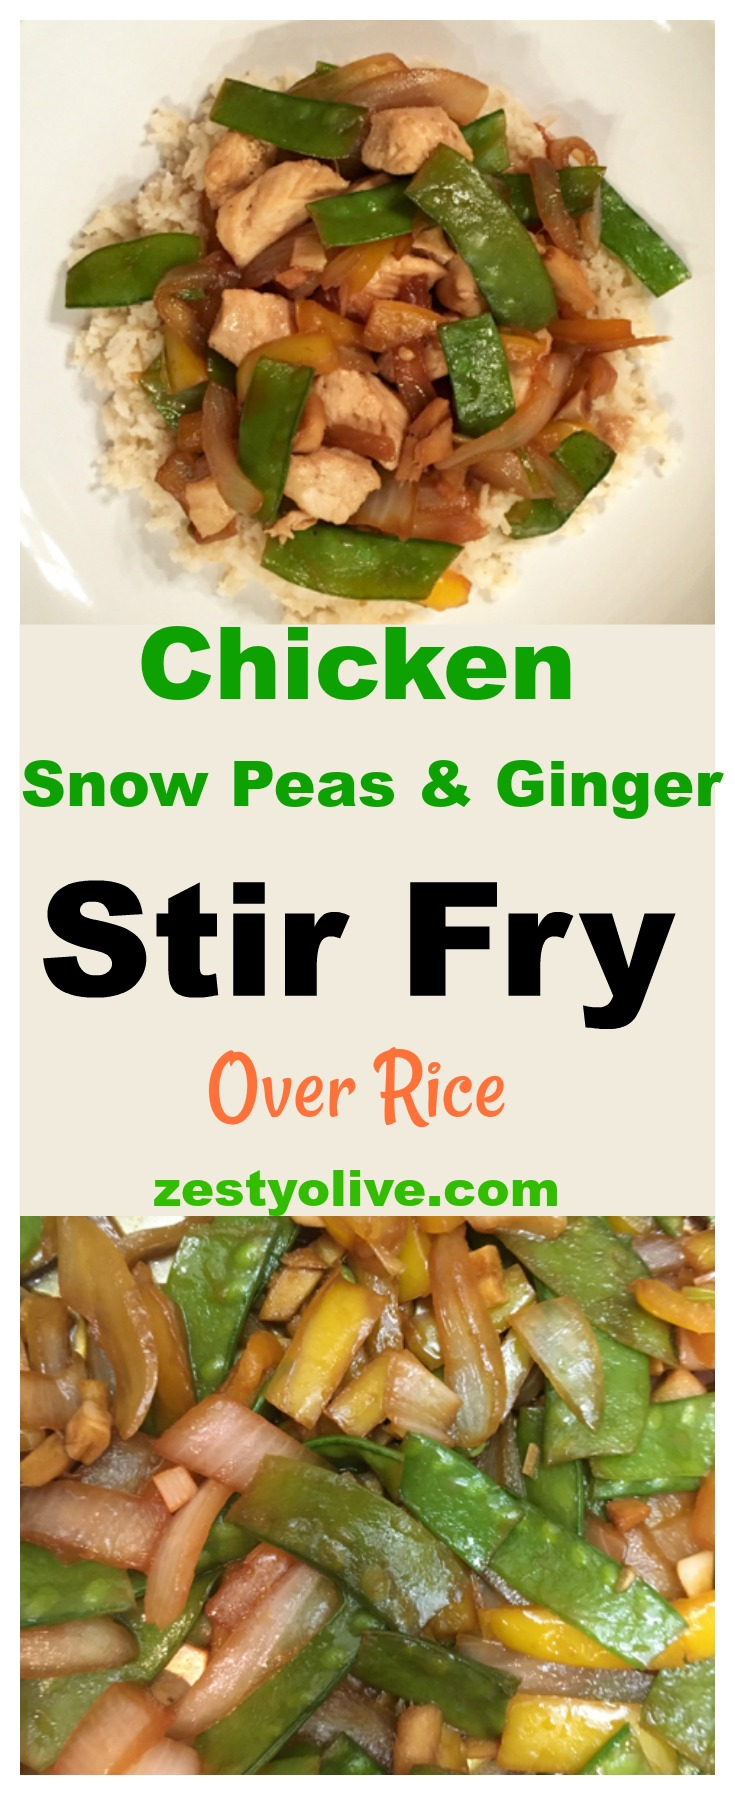 I love snow peas. I love ginger. Combine them with chicken, and you've got a delicious meal just waiting to be created: Chicken, Snow Peas and Ginger Stir Fry. I combined these, stir-fry and served over brown rice. If you happen to have leftovers, just warm them up the next day and enjoy again.